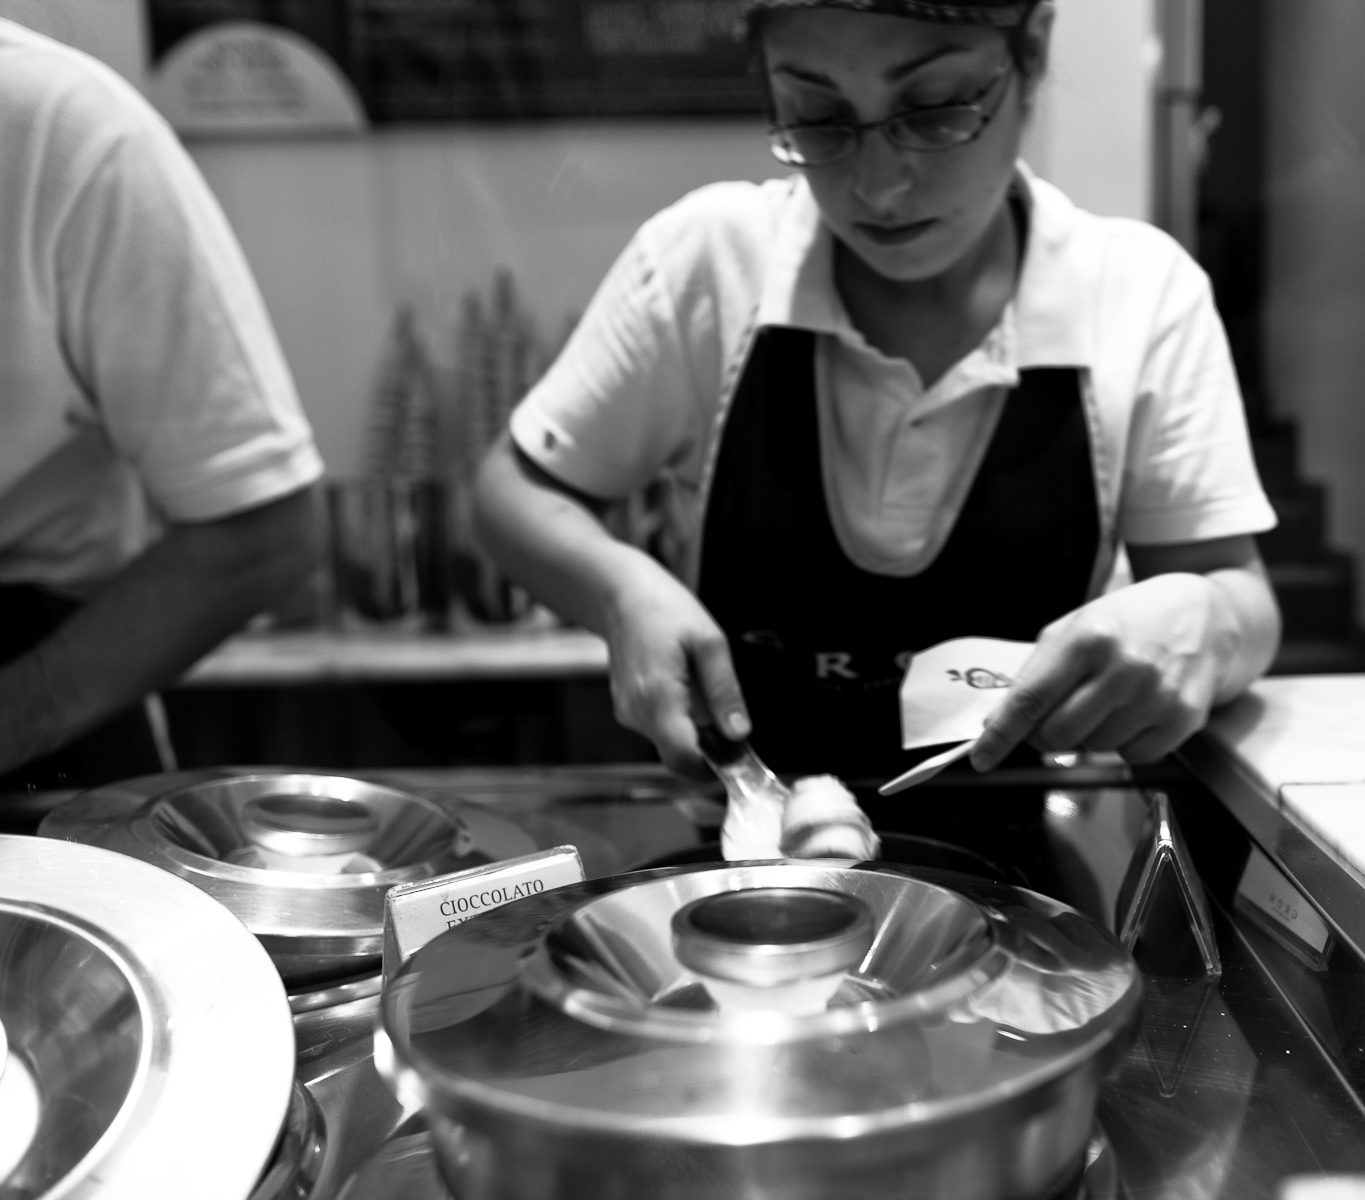 Scooping gelato, almost like a soft quenelle